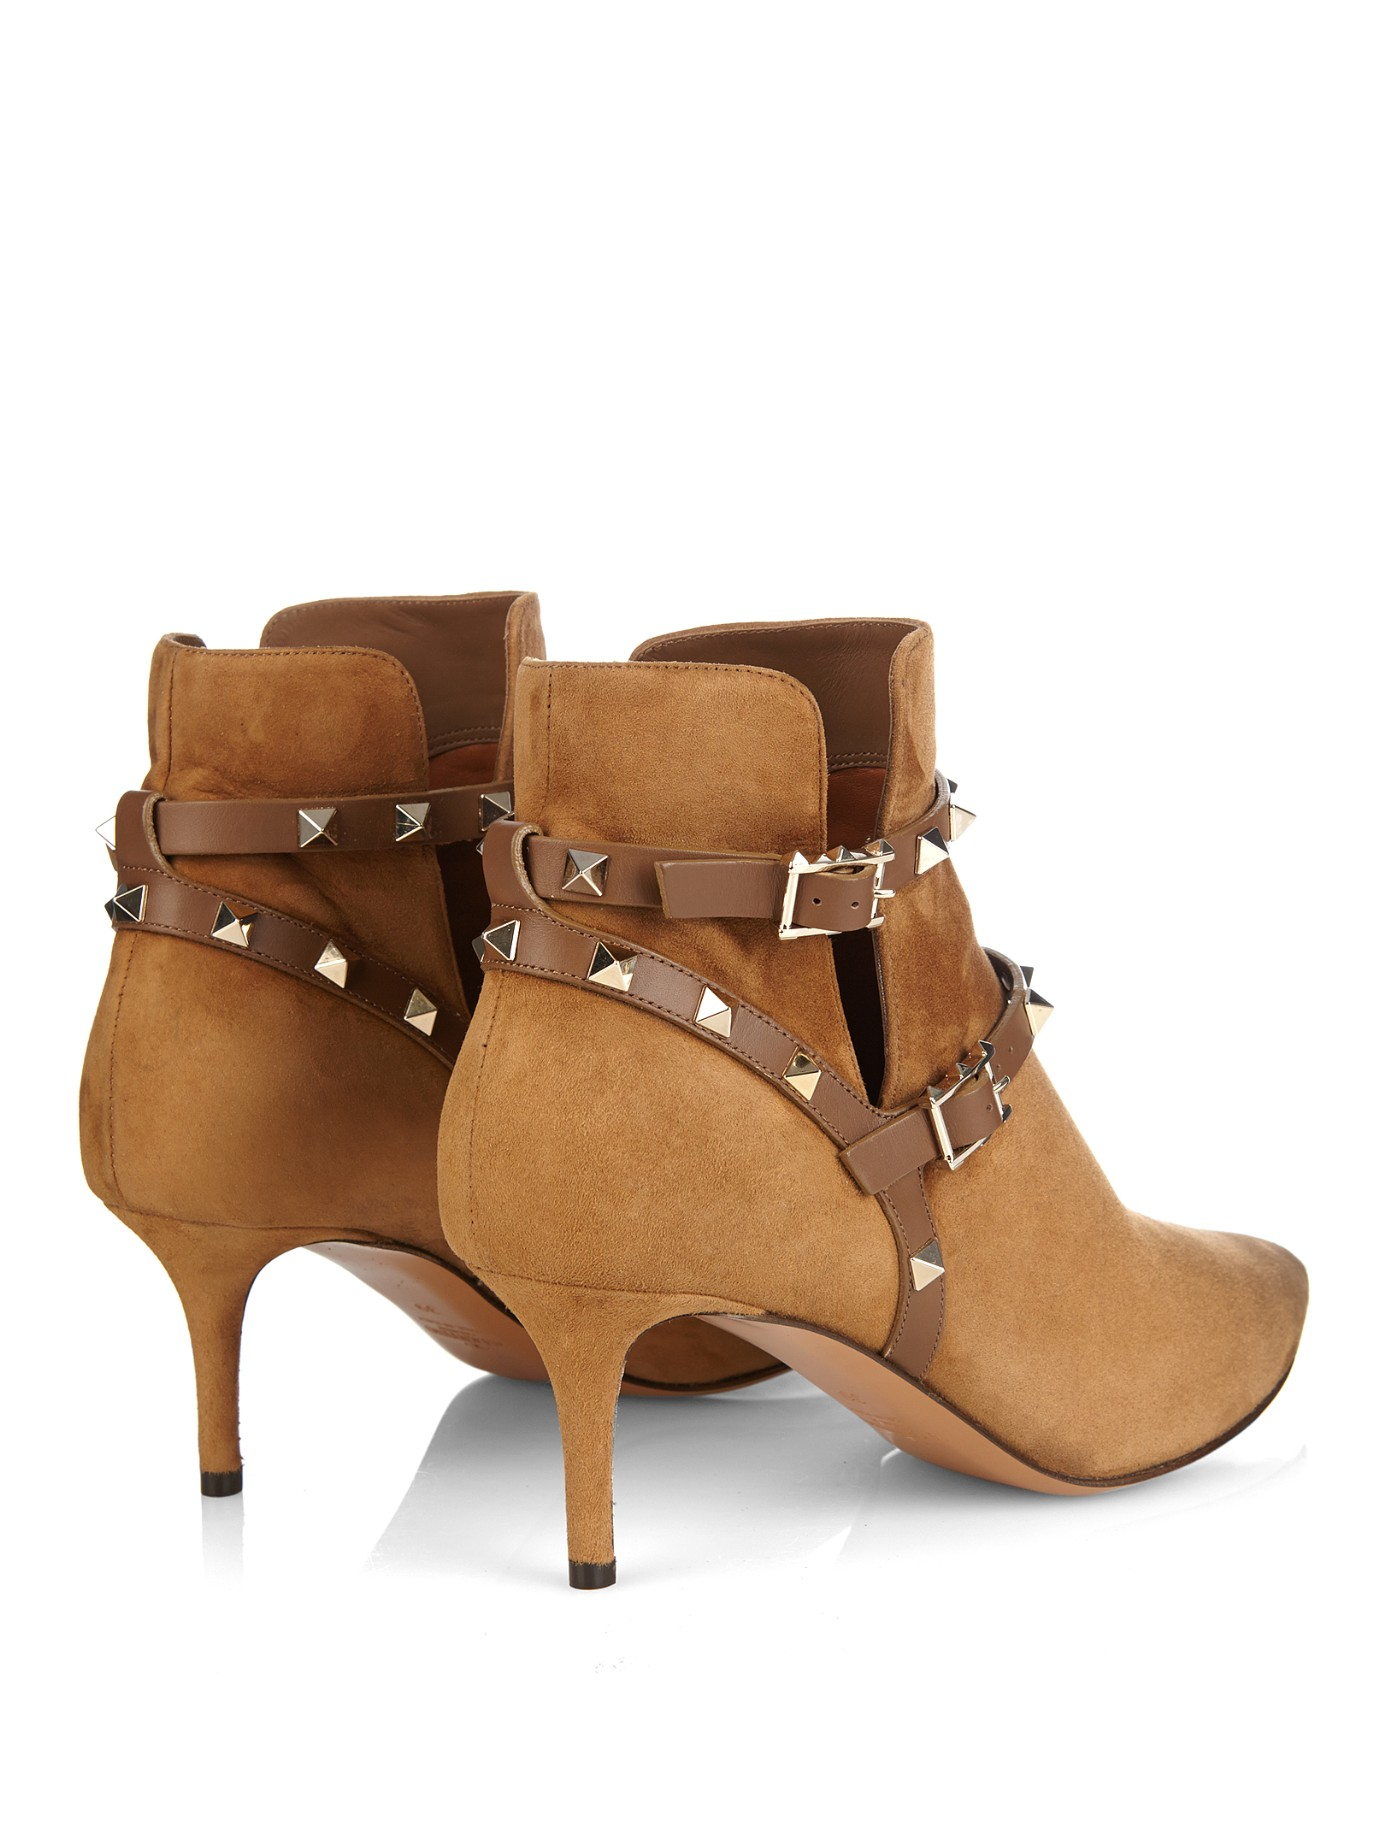 valentino rockstud suede ankle boots in brown | lyst